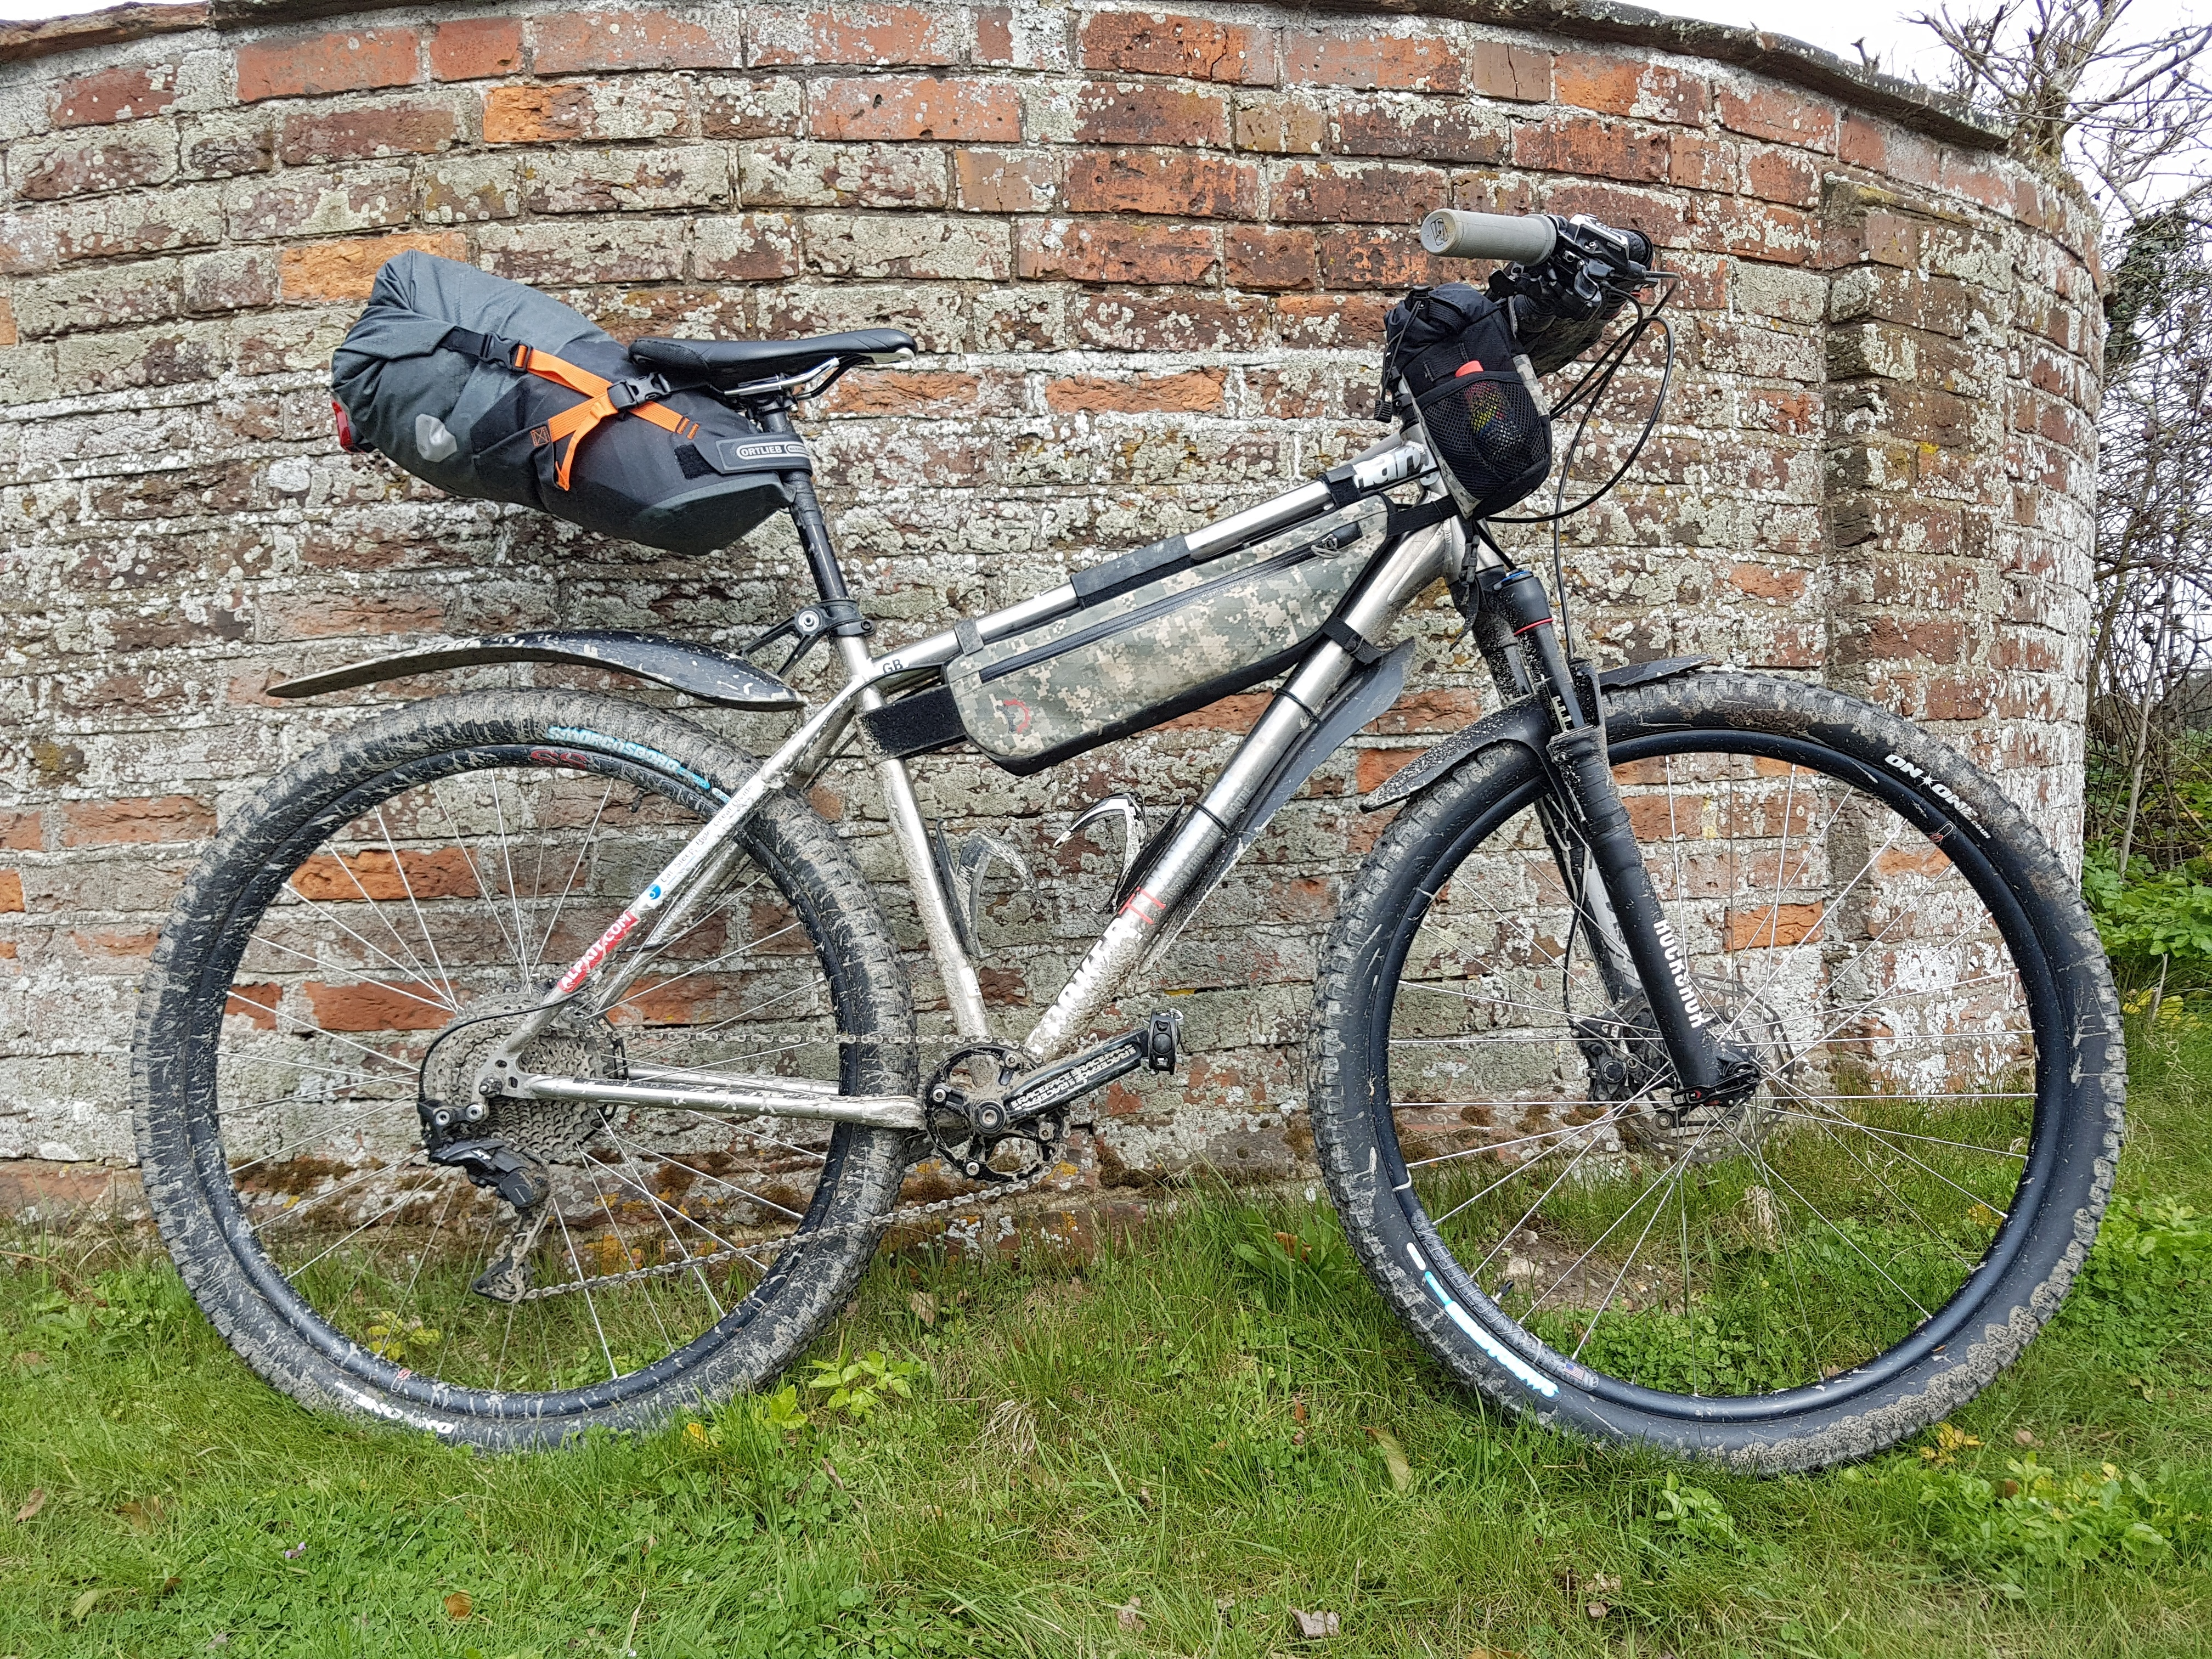 8d7f28187bab00 I'm not going to get into the debate about what separates touring and  bikepacking, but using soft luggage instead of racks & panniers would be a  popu ...